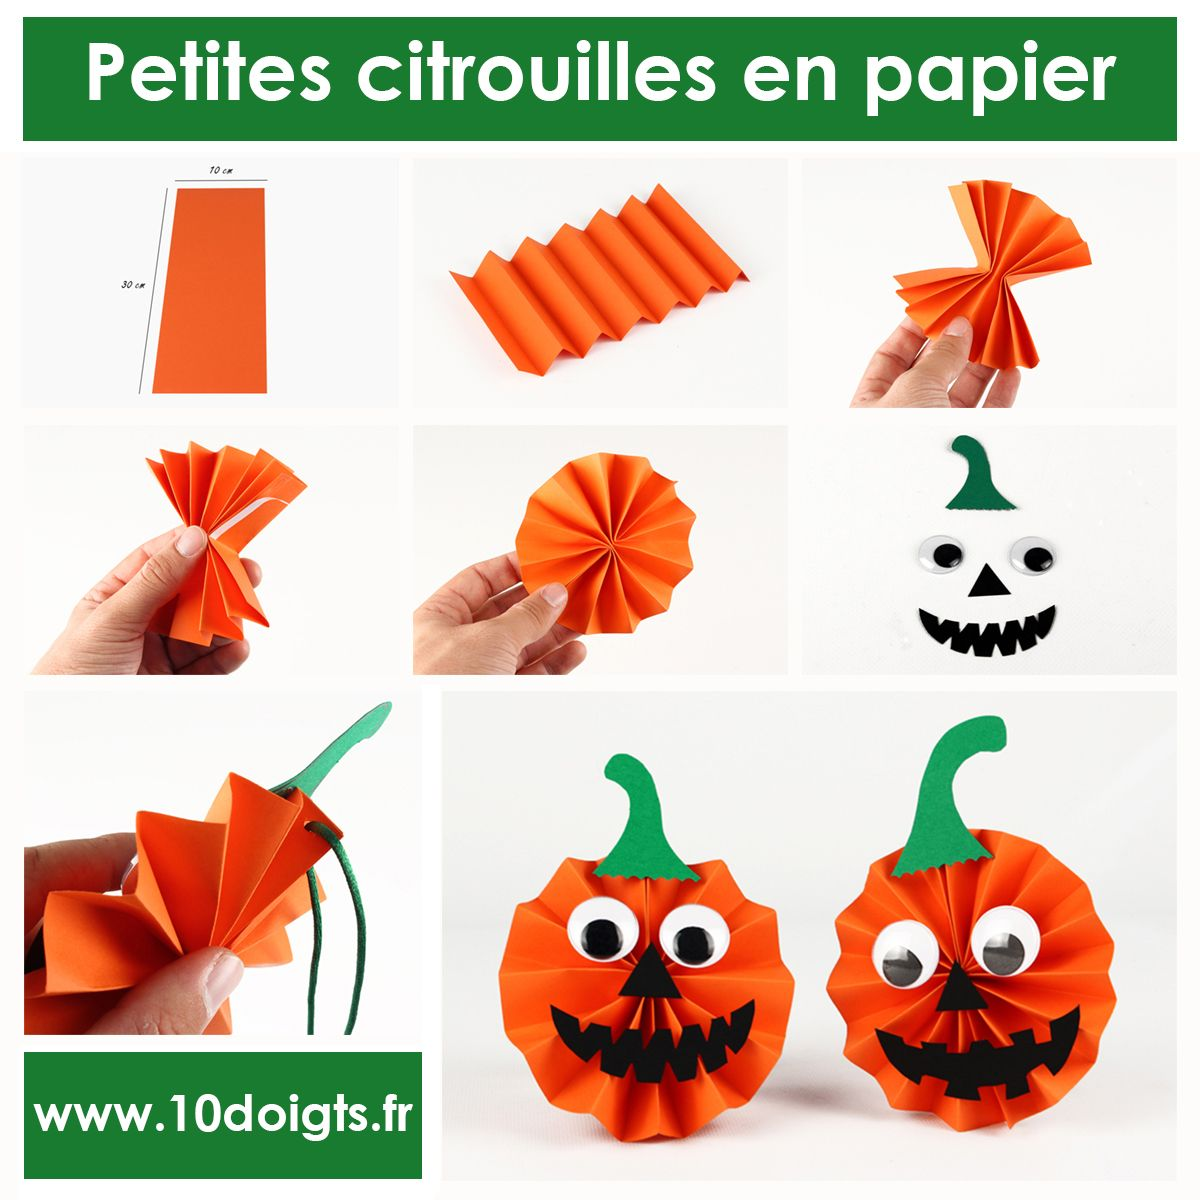 petites citrouilles en papier activit s enfantines bricolages d 39 halloween pinterest. Black Bedroom Furniture Sets. Home Design Ideas